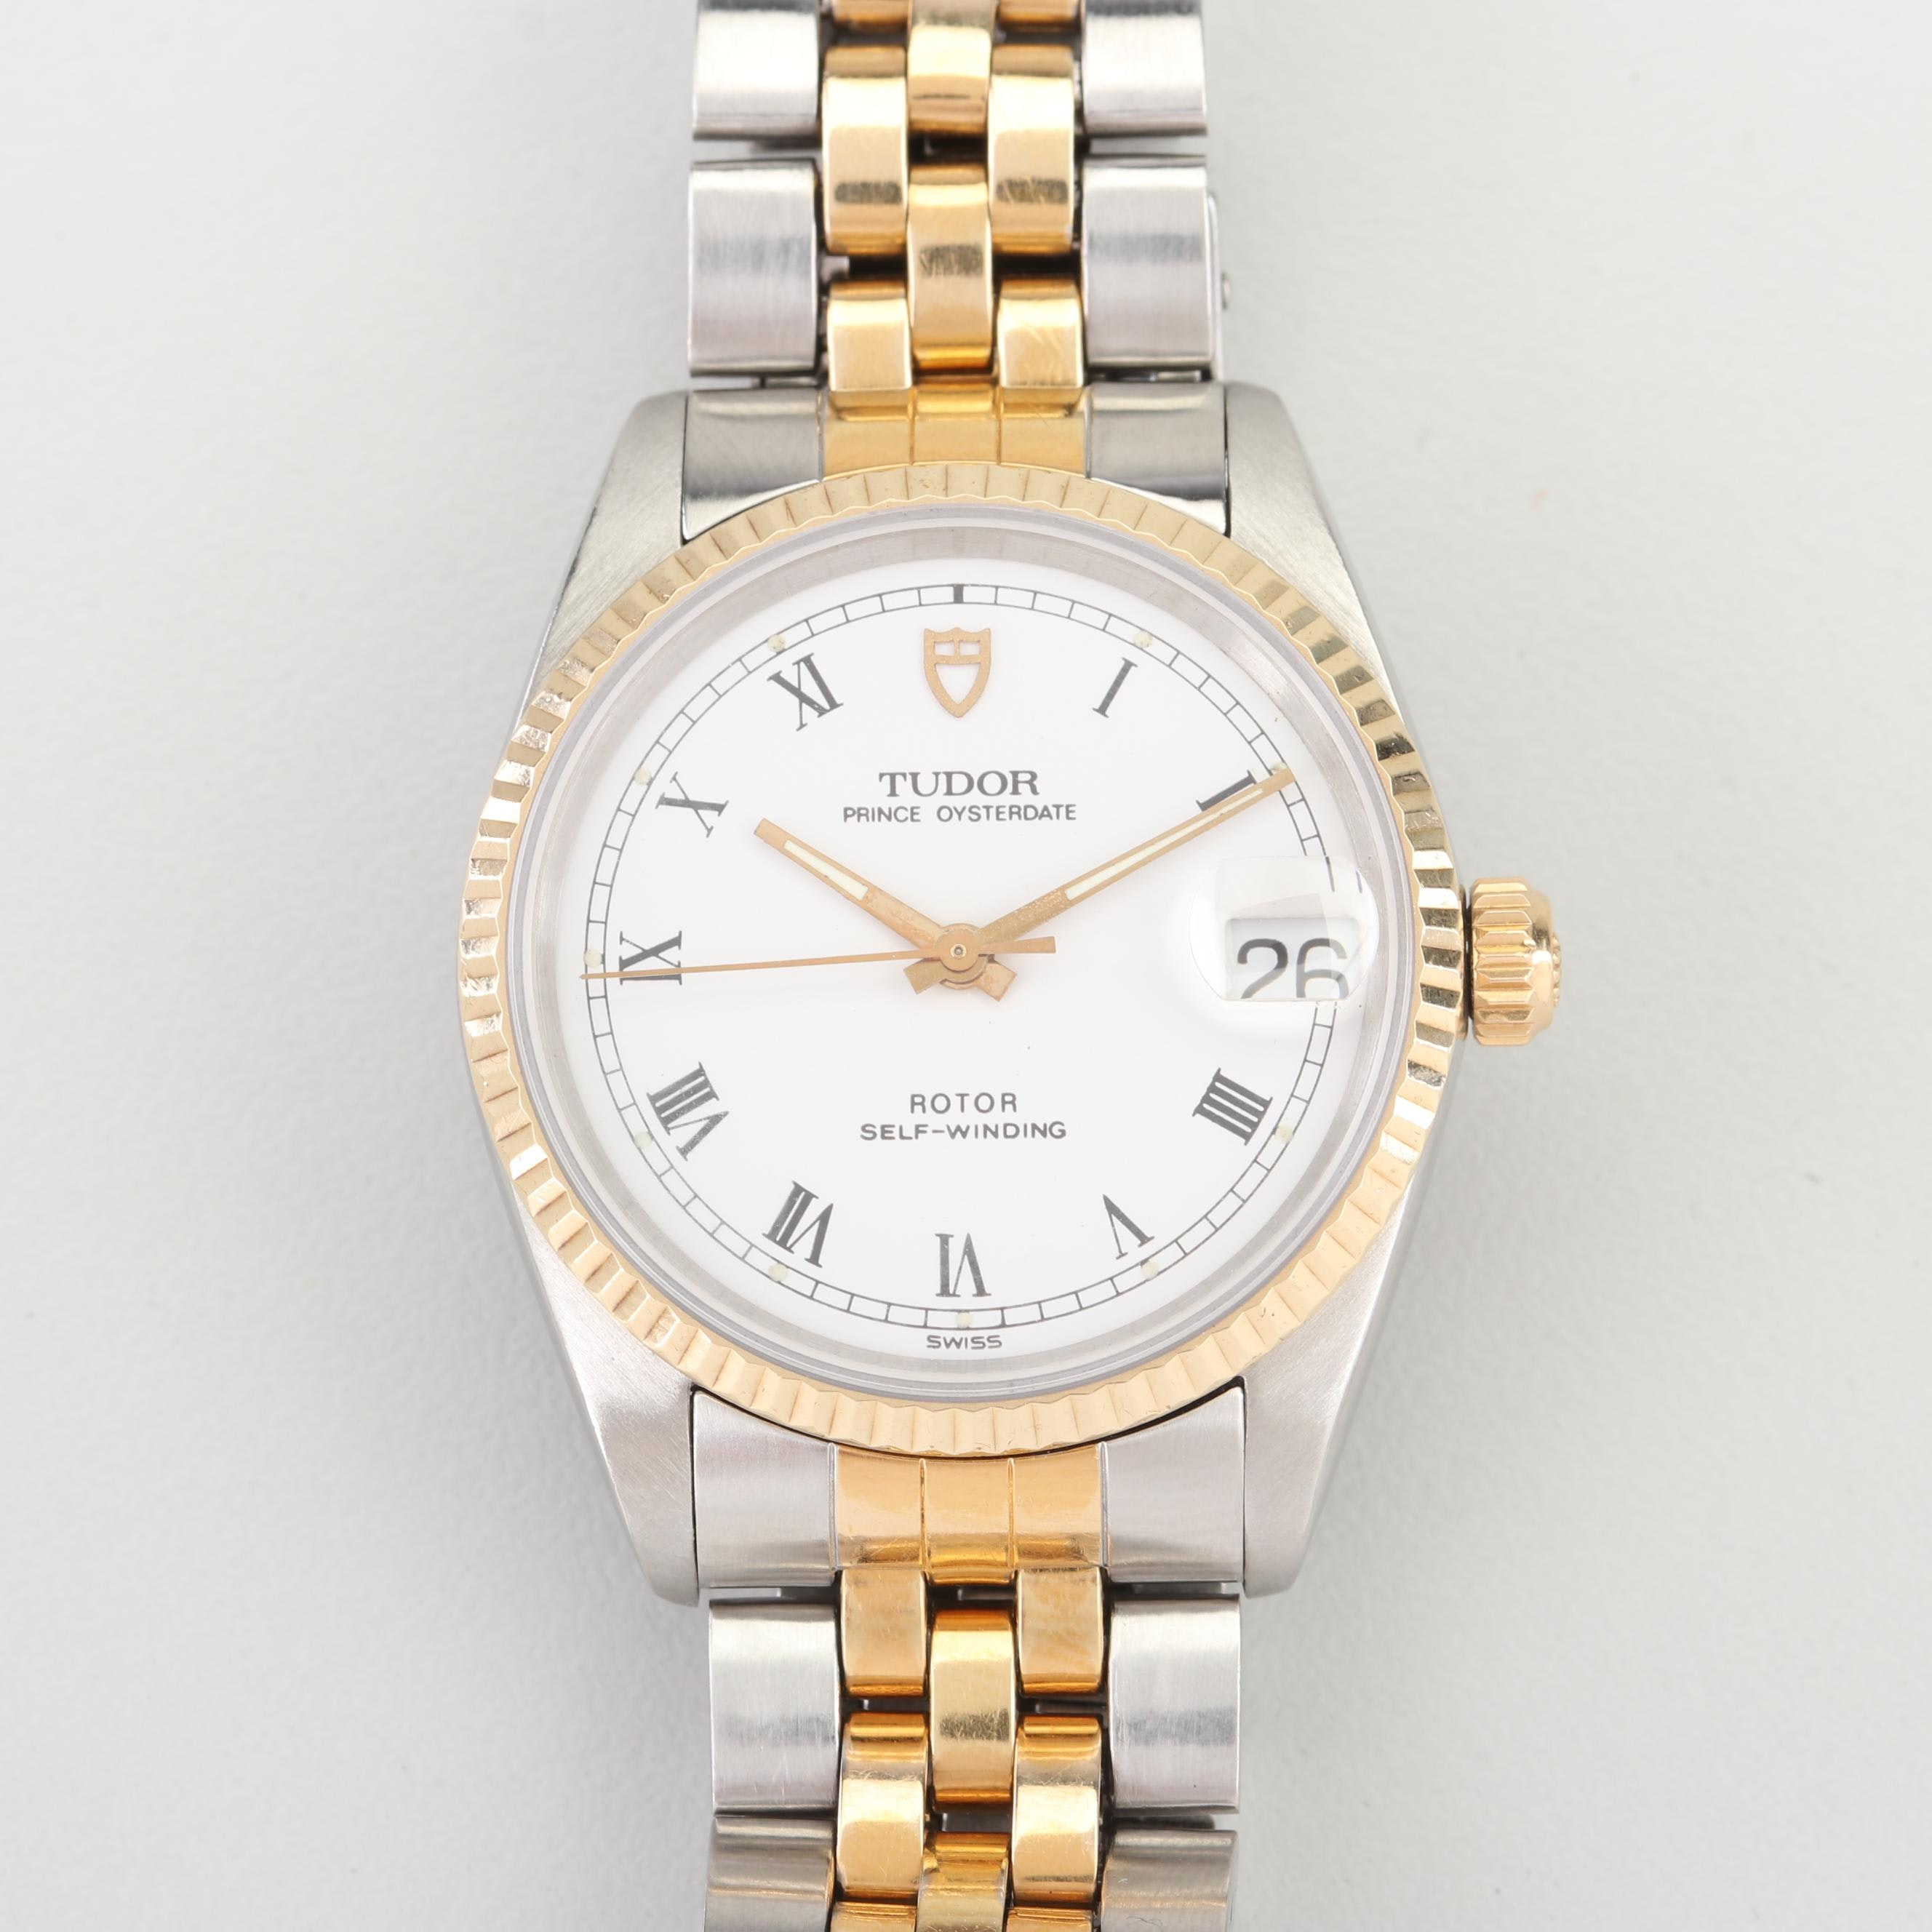 Tudor Prince Oysterdate 14K Yellow Gold and Stainless Steel Wristwatch